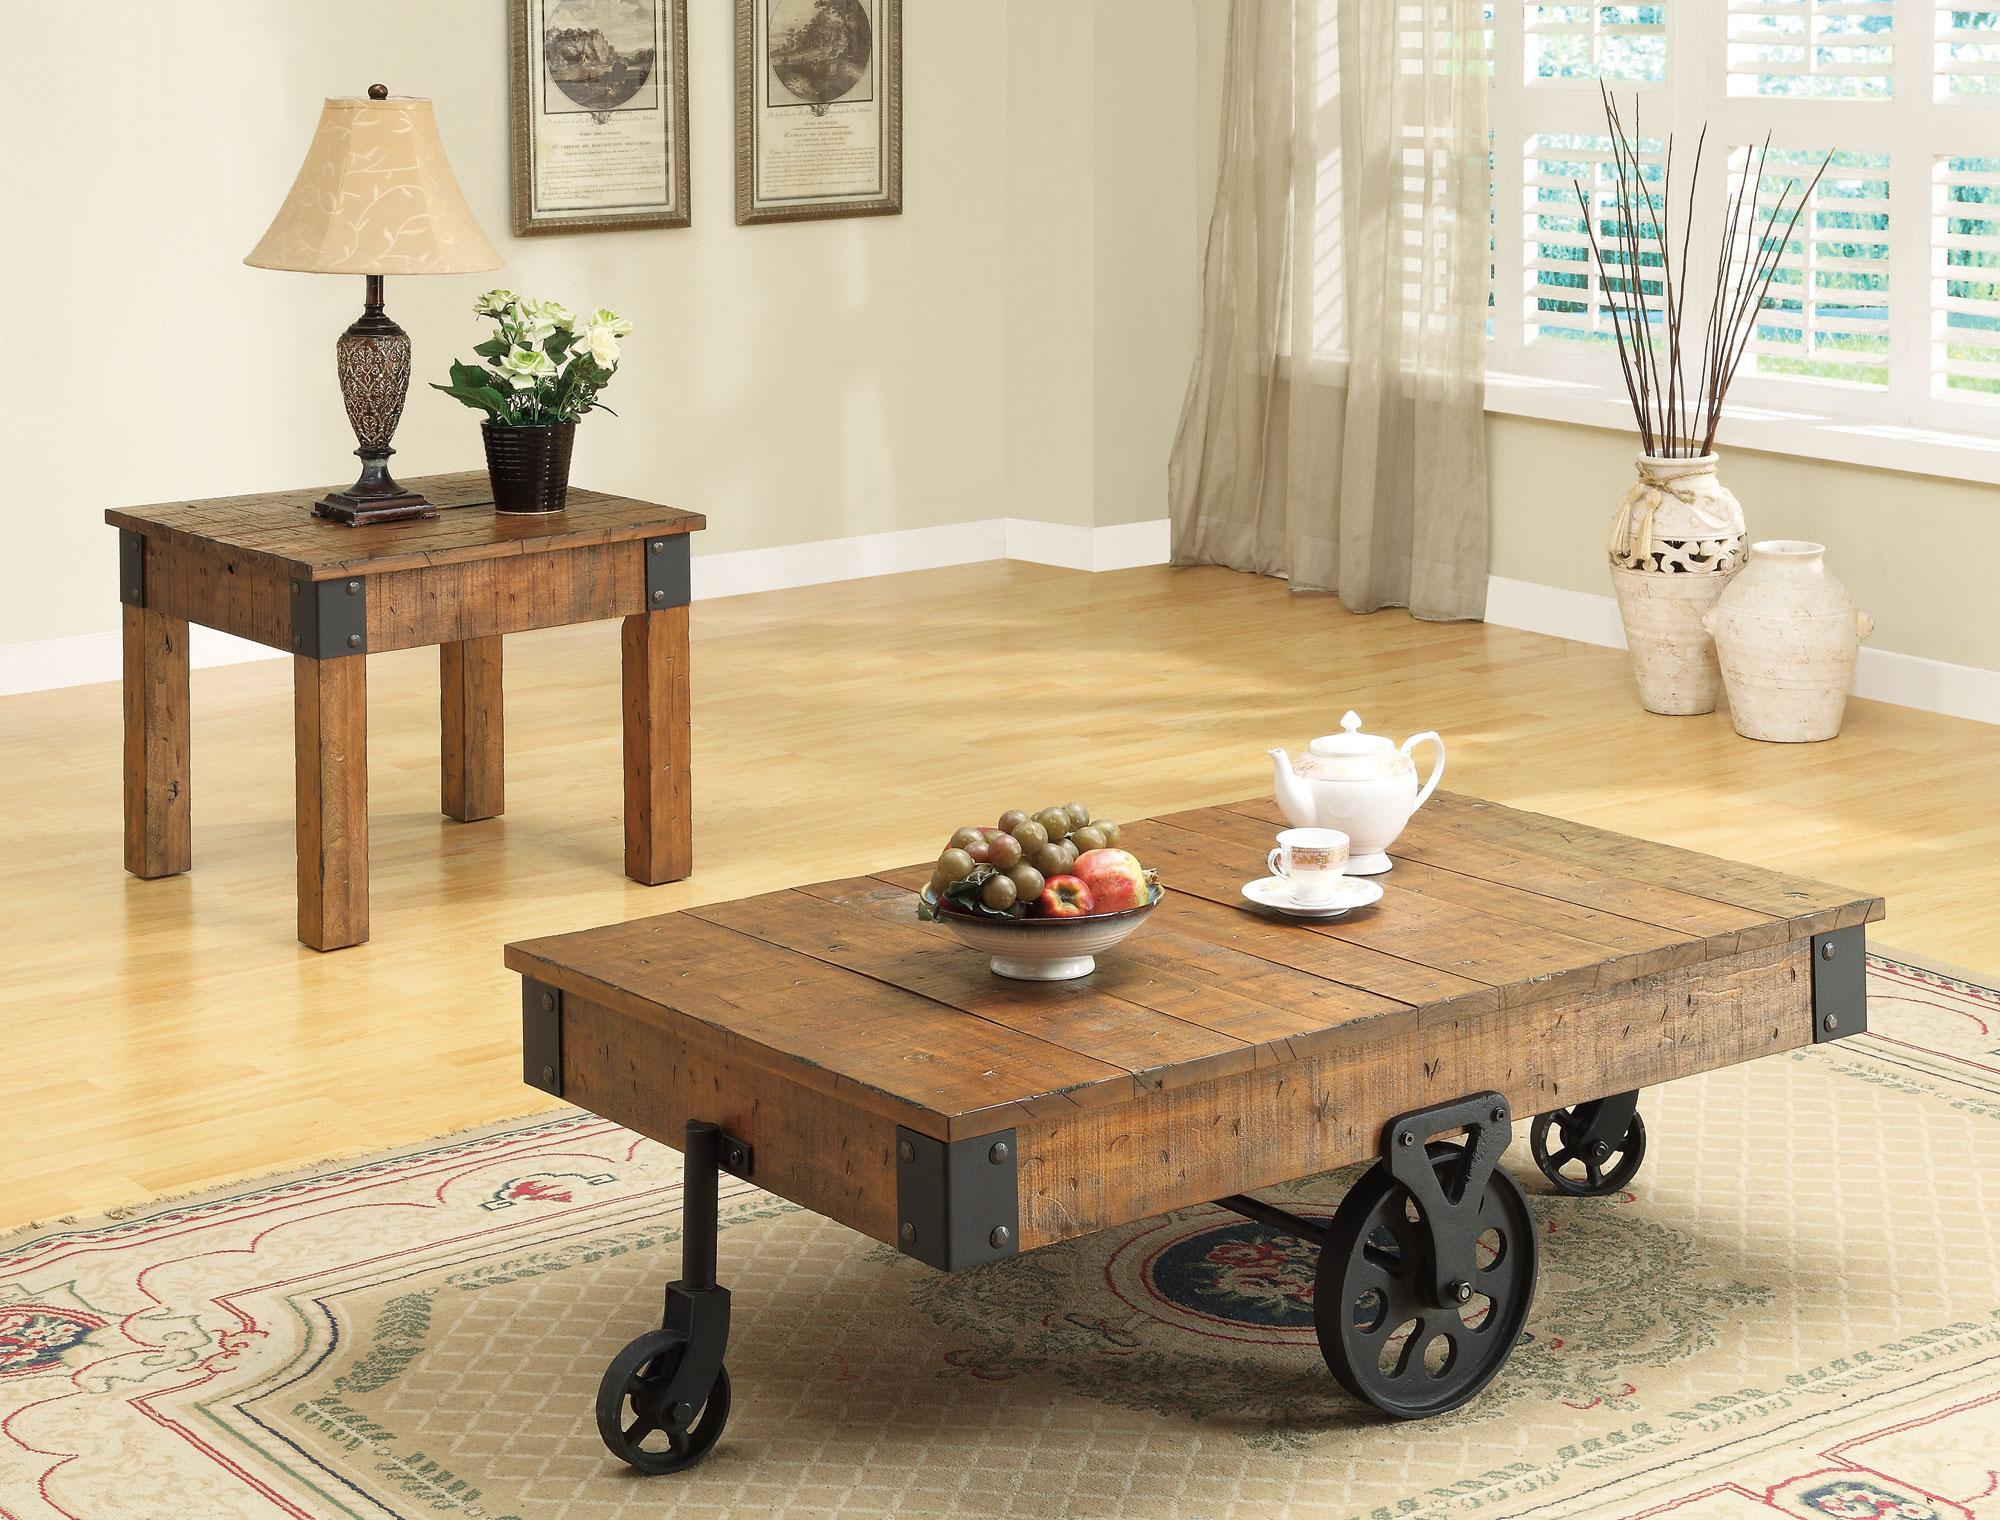 coffee tables rustic occasional table set products coaster color accent coas with wheels farmhouse legs reclaimed furniture acrylic bedside side light adjustable beds wood and